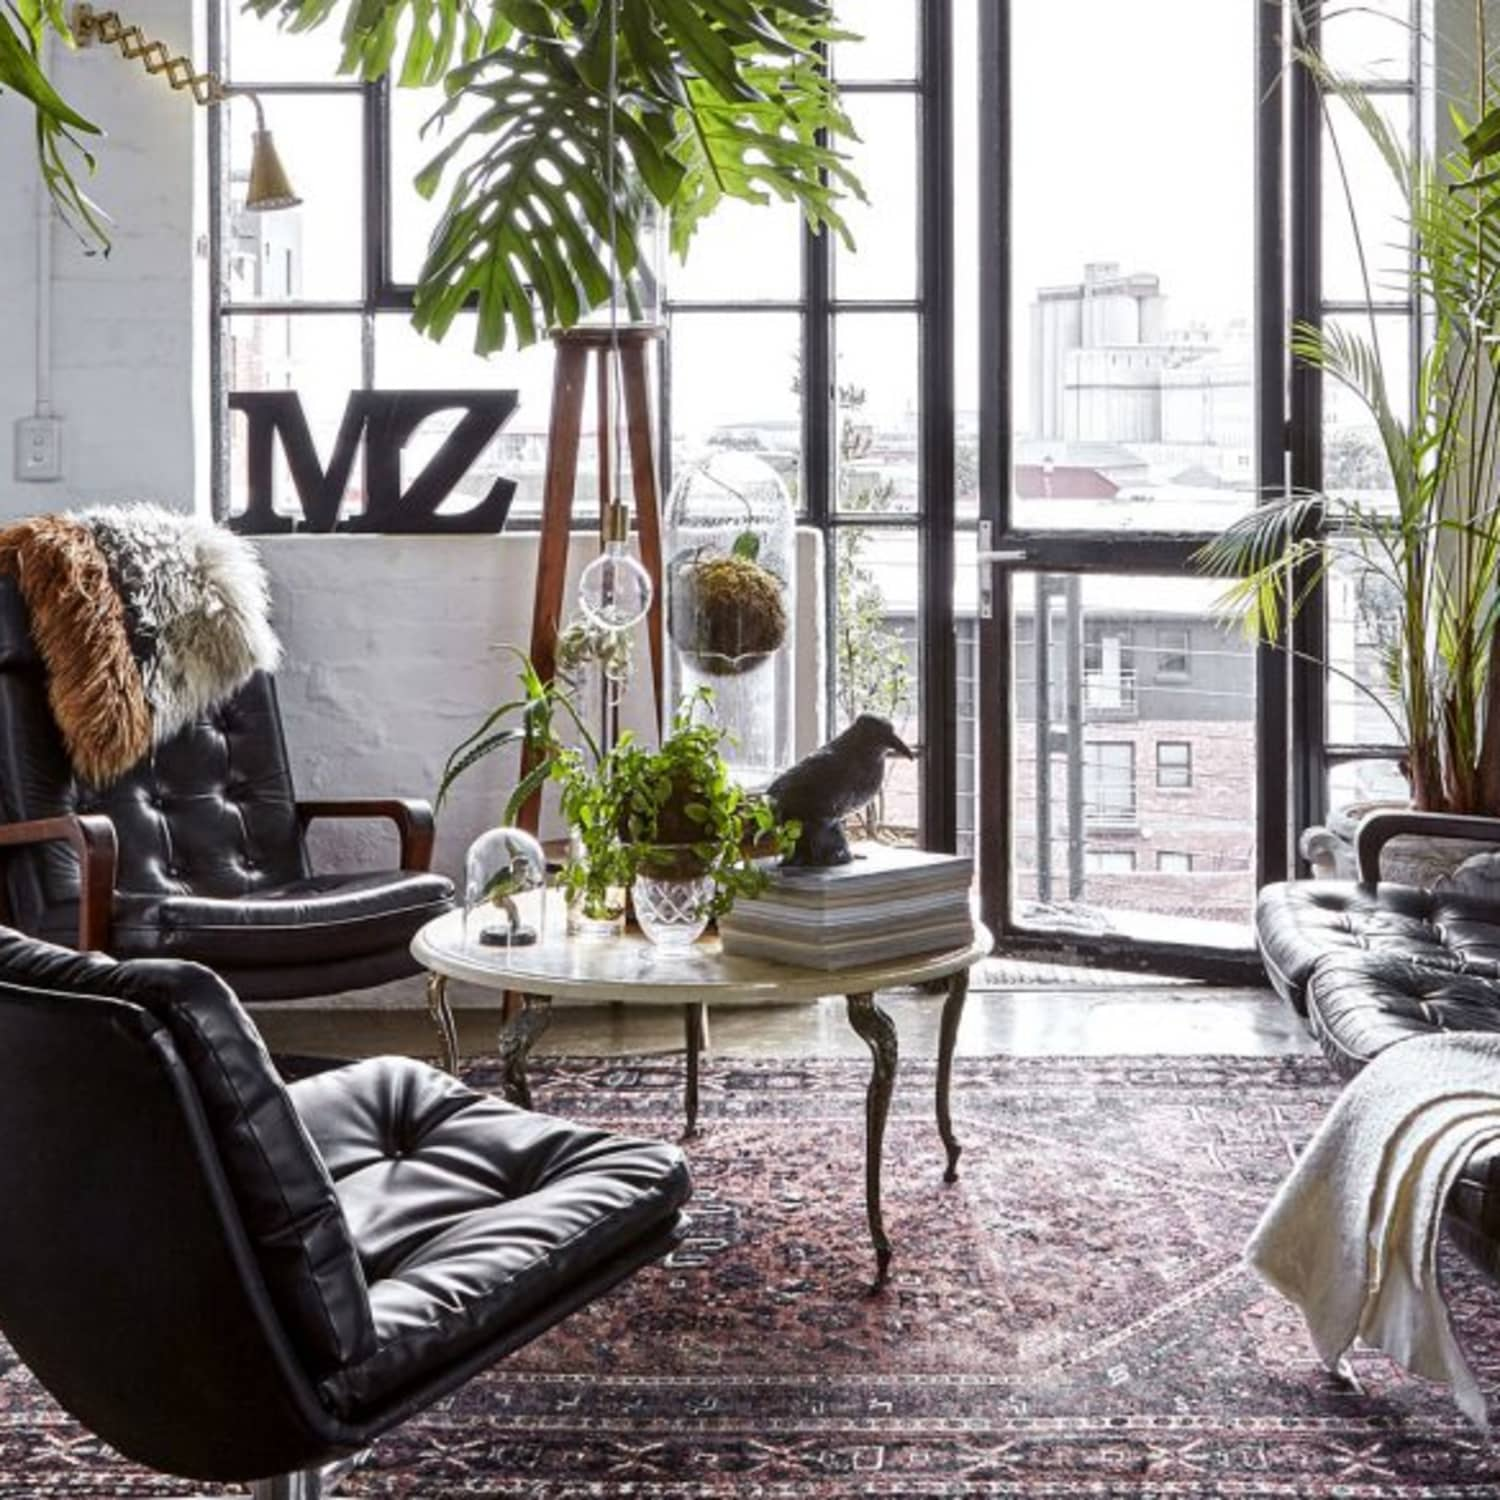 Decor Styles To Mix Hygge Gothic Jungalow Apartment Therapy